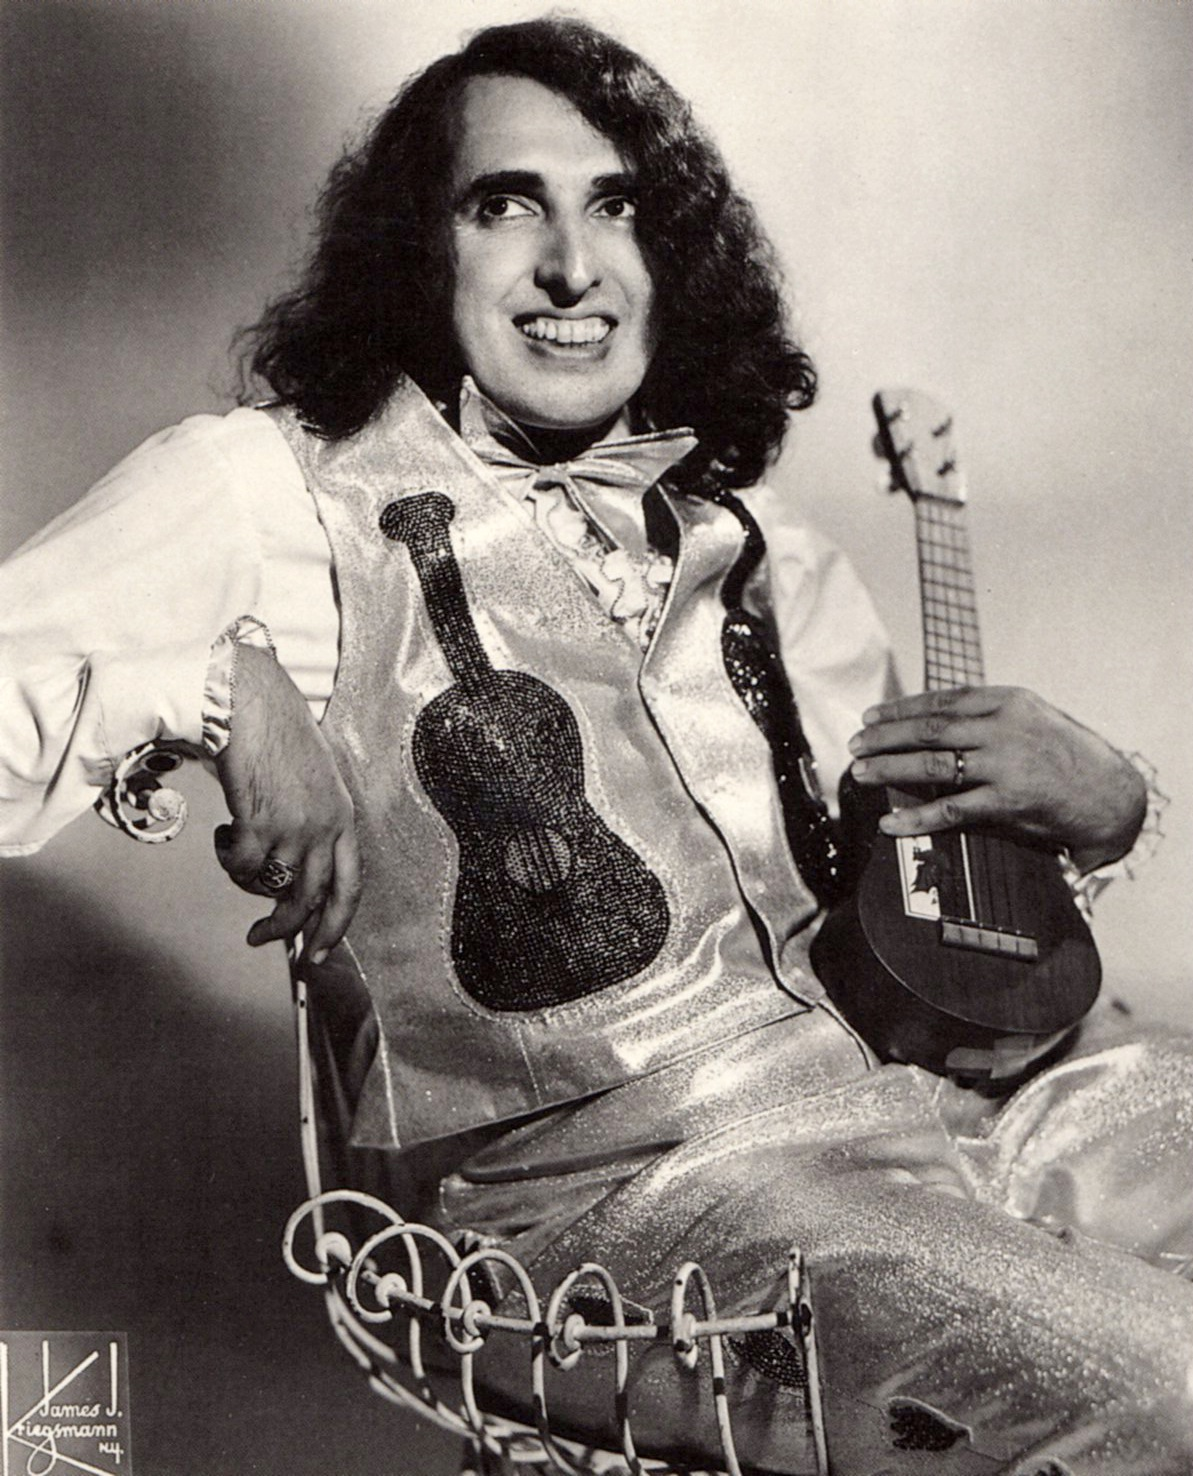 HALL OF FAME: TINY TIM